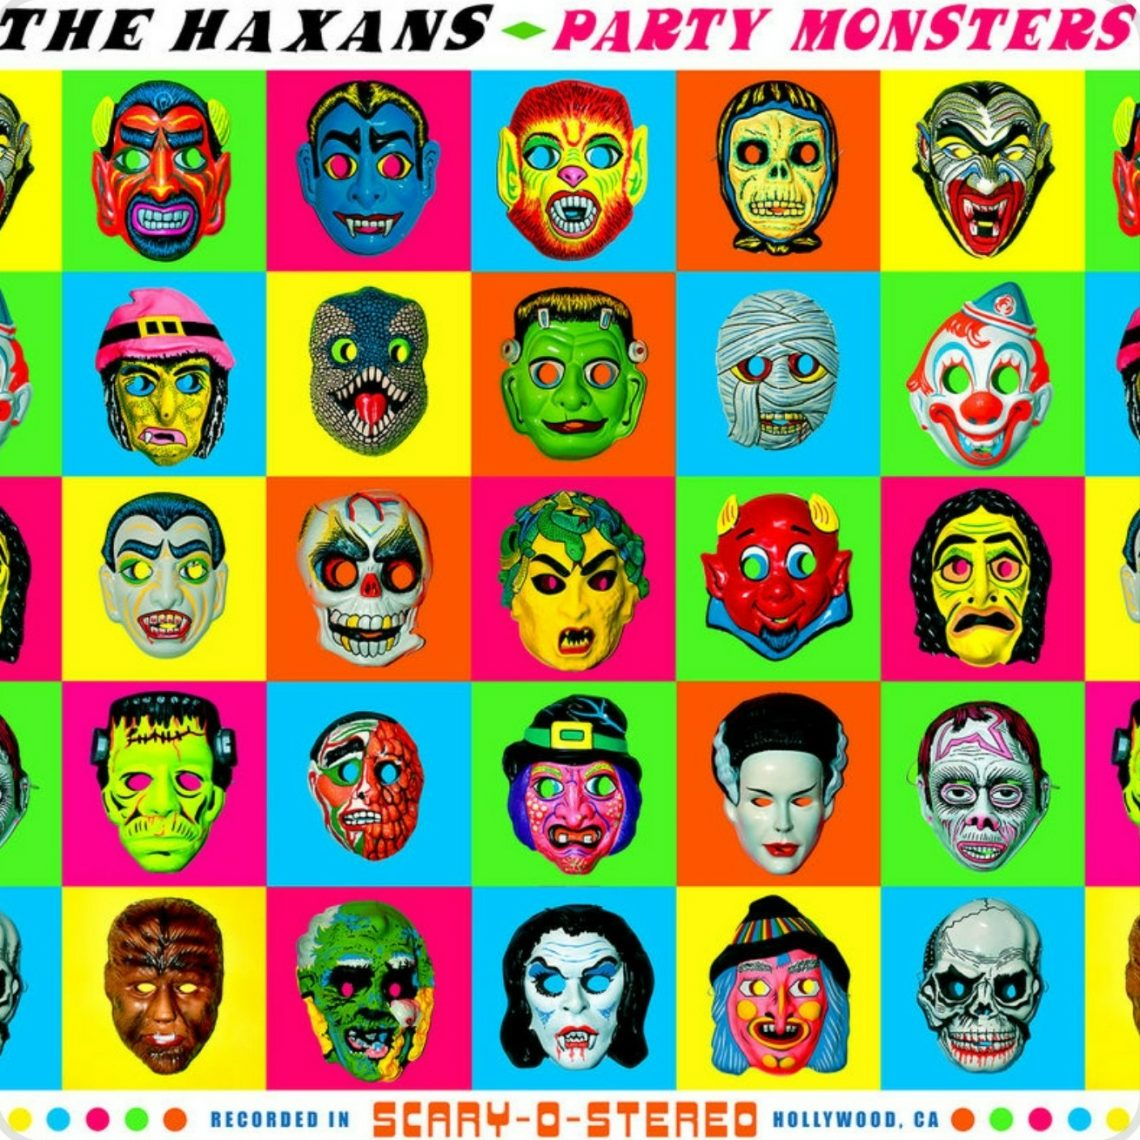 The Haxans – Party Monsters (Album Review)